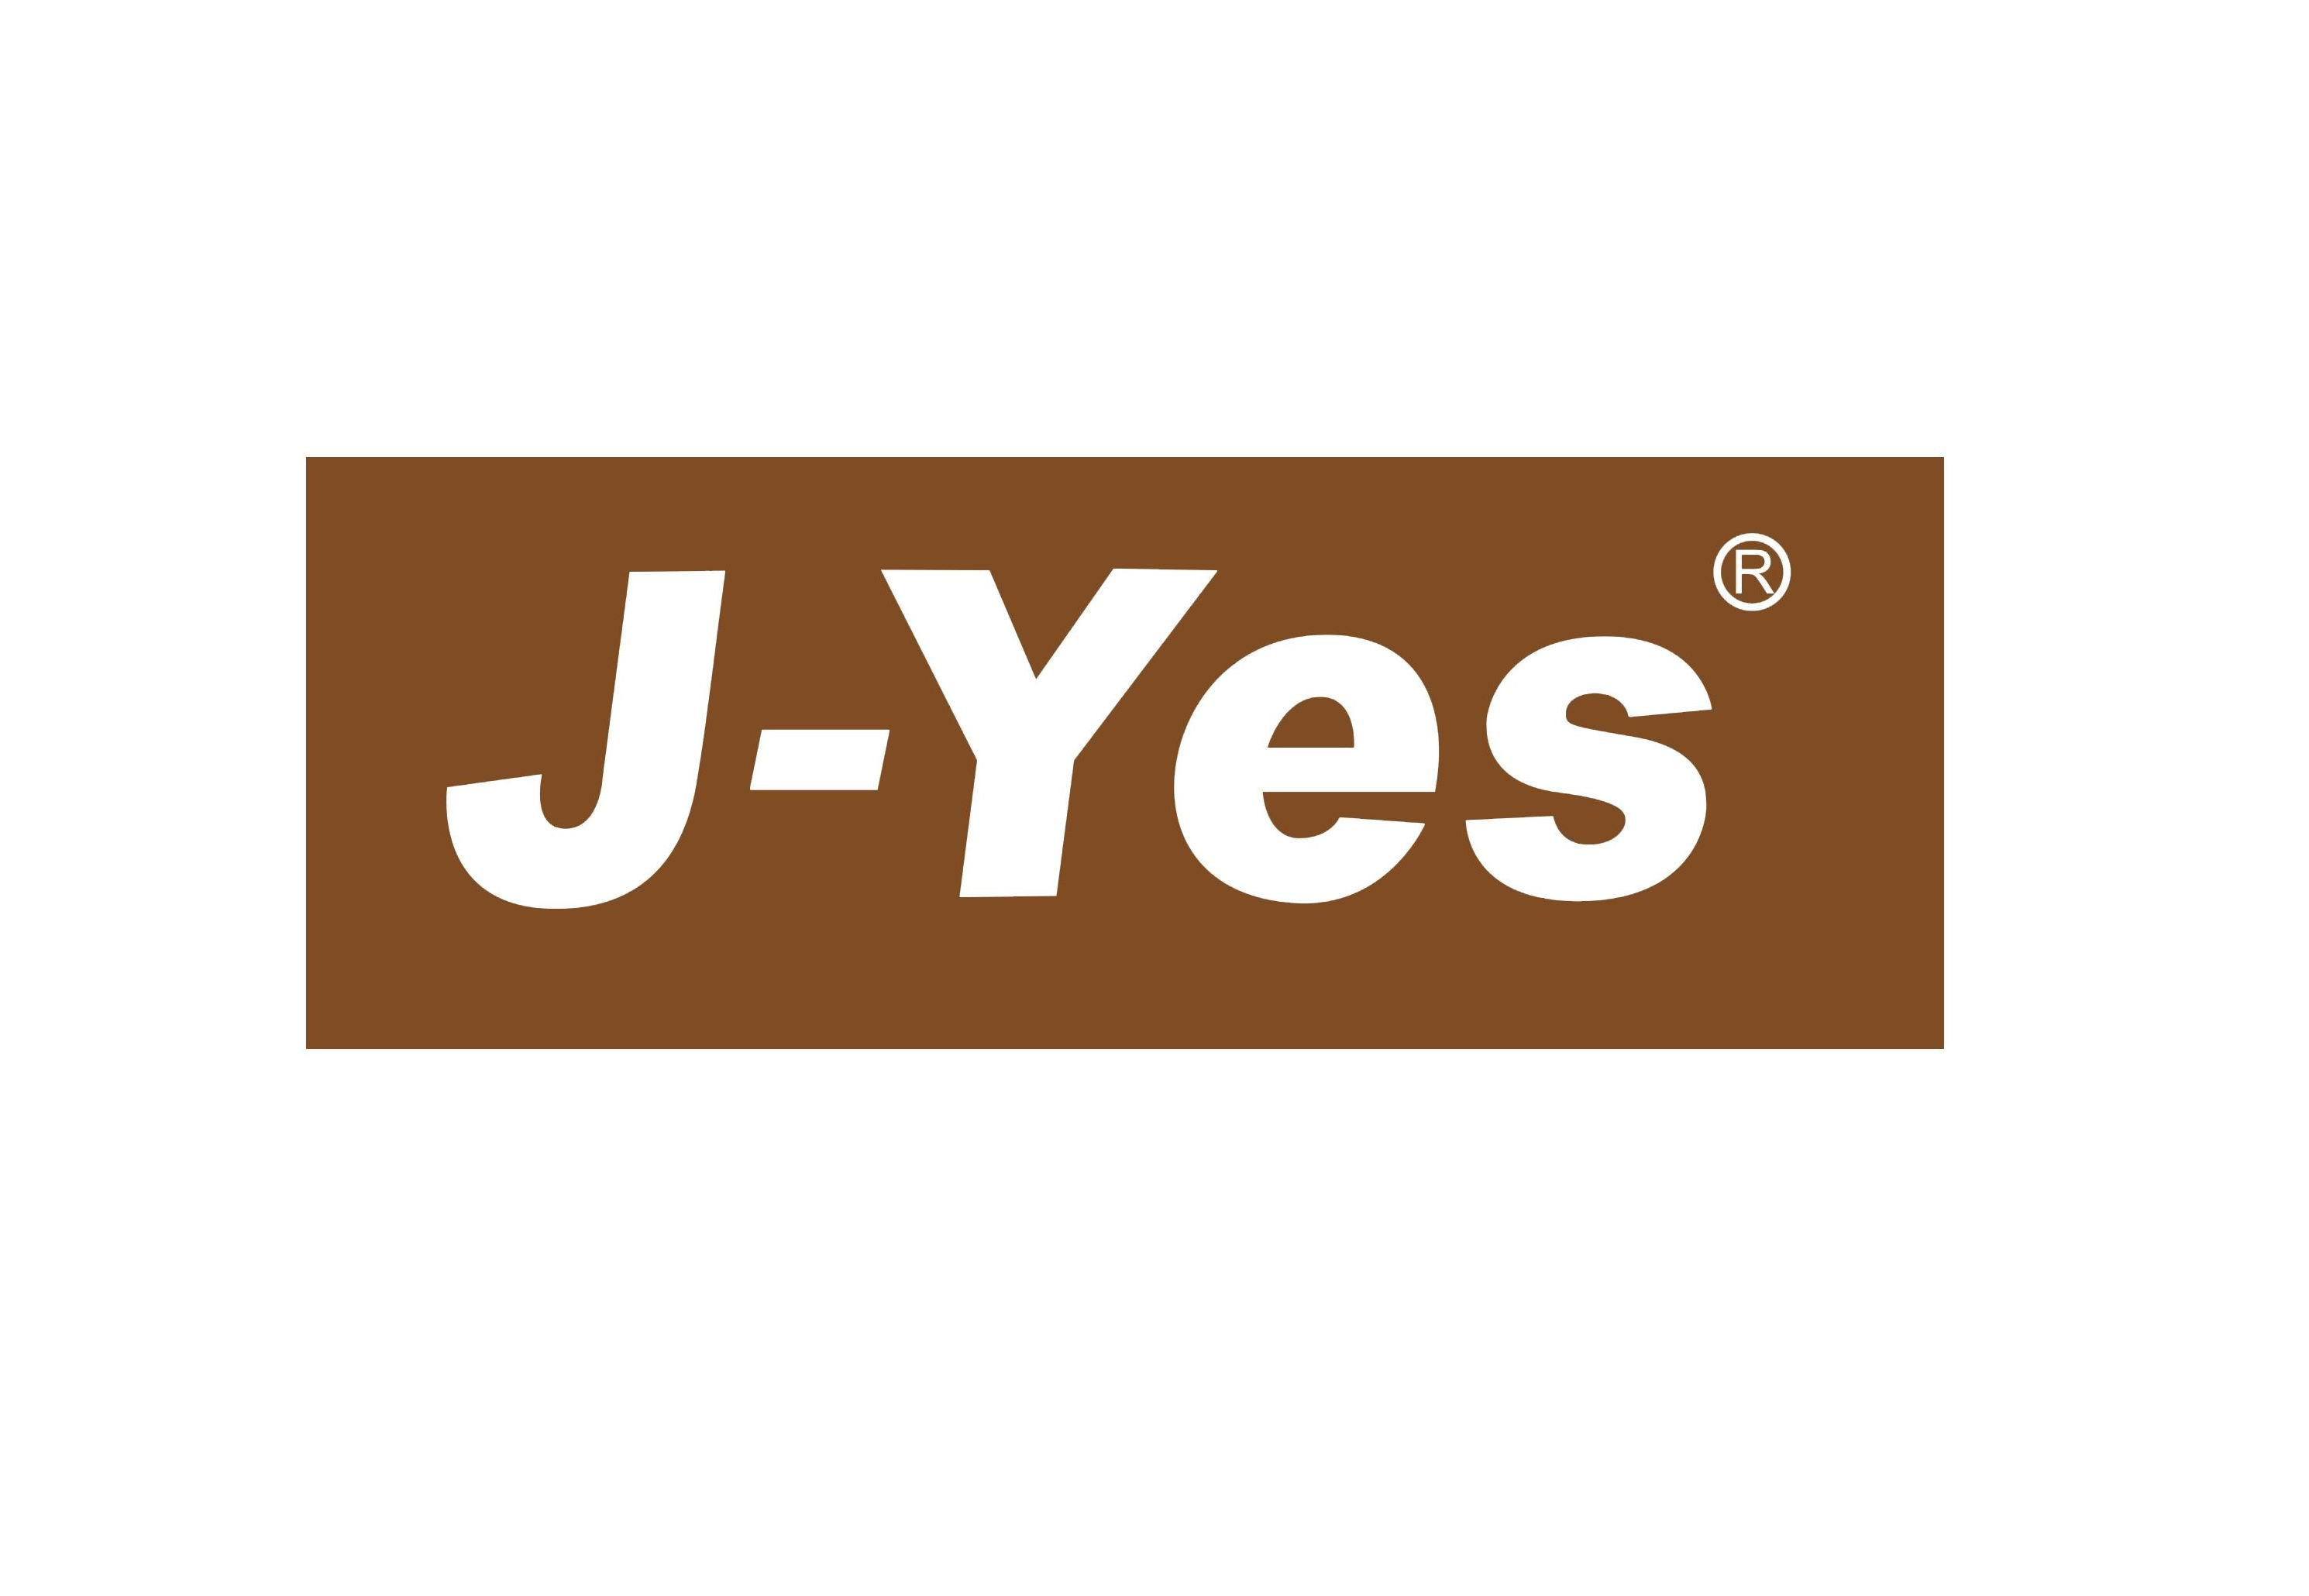 J-Yes